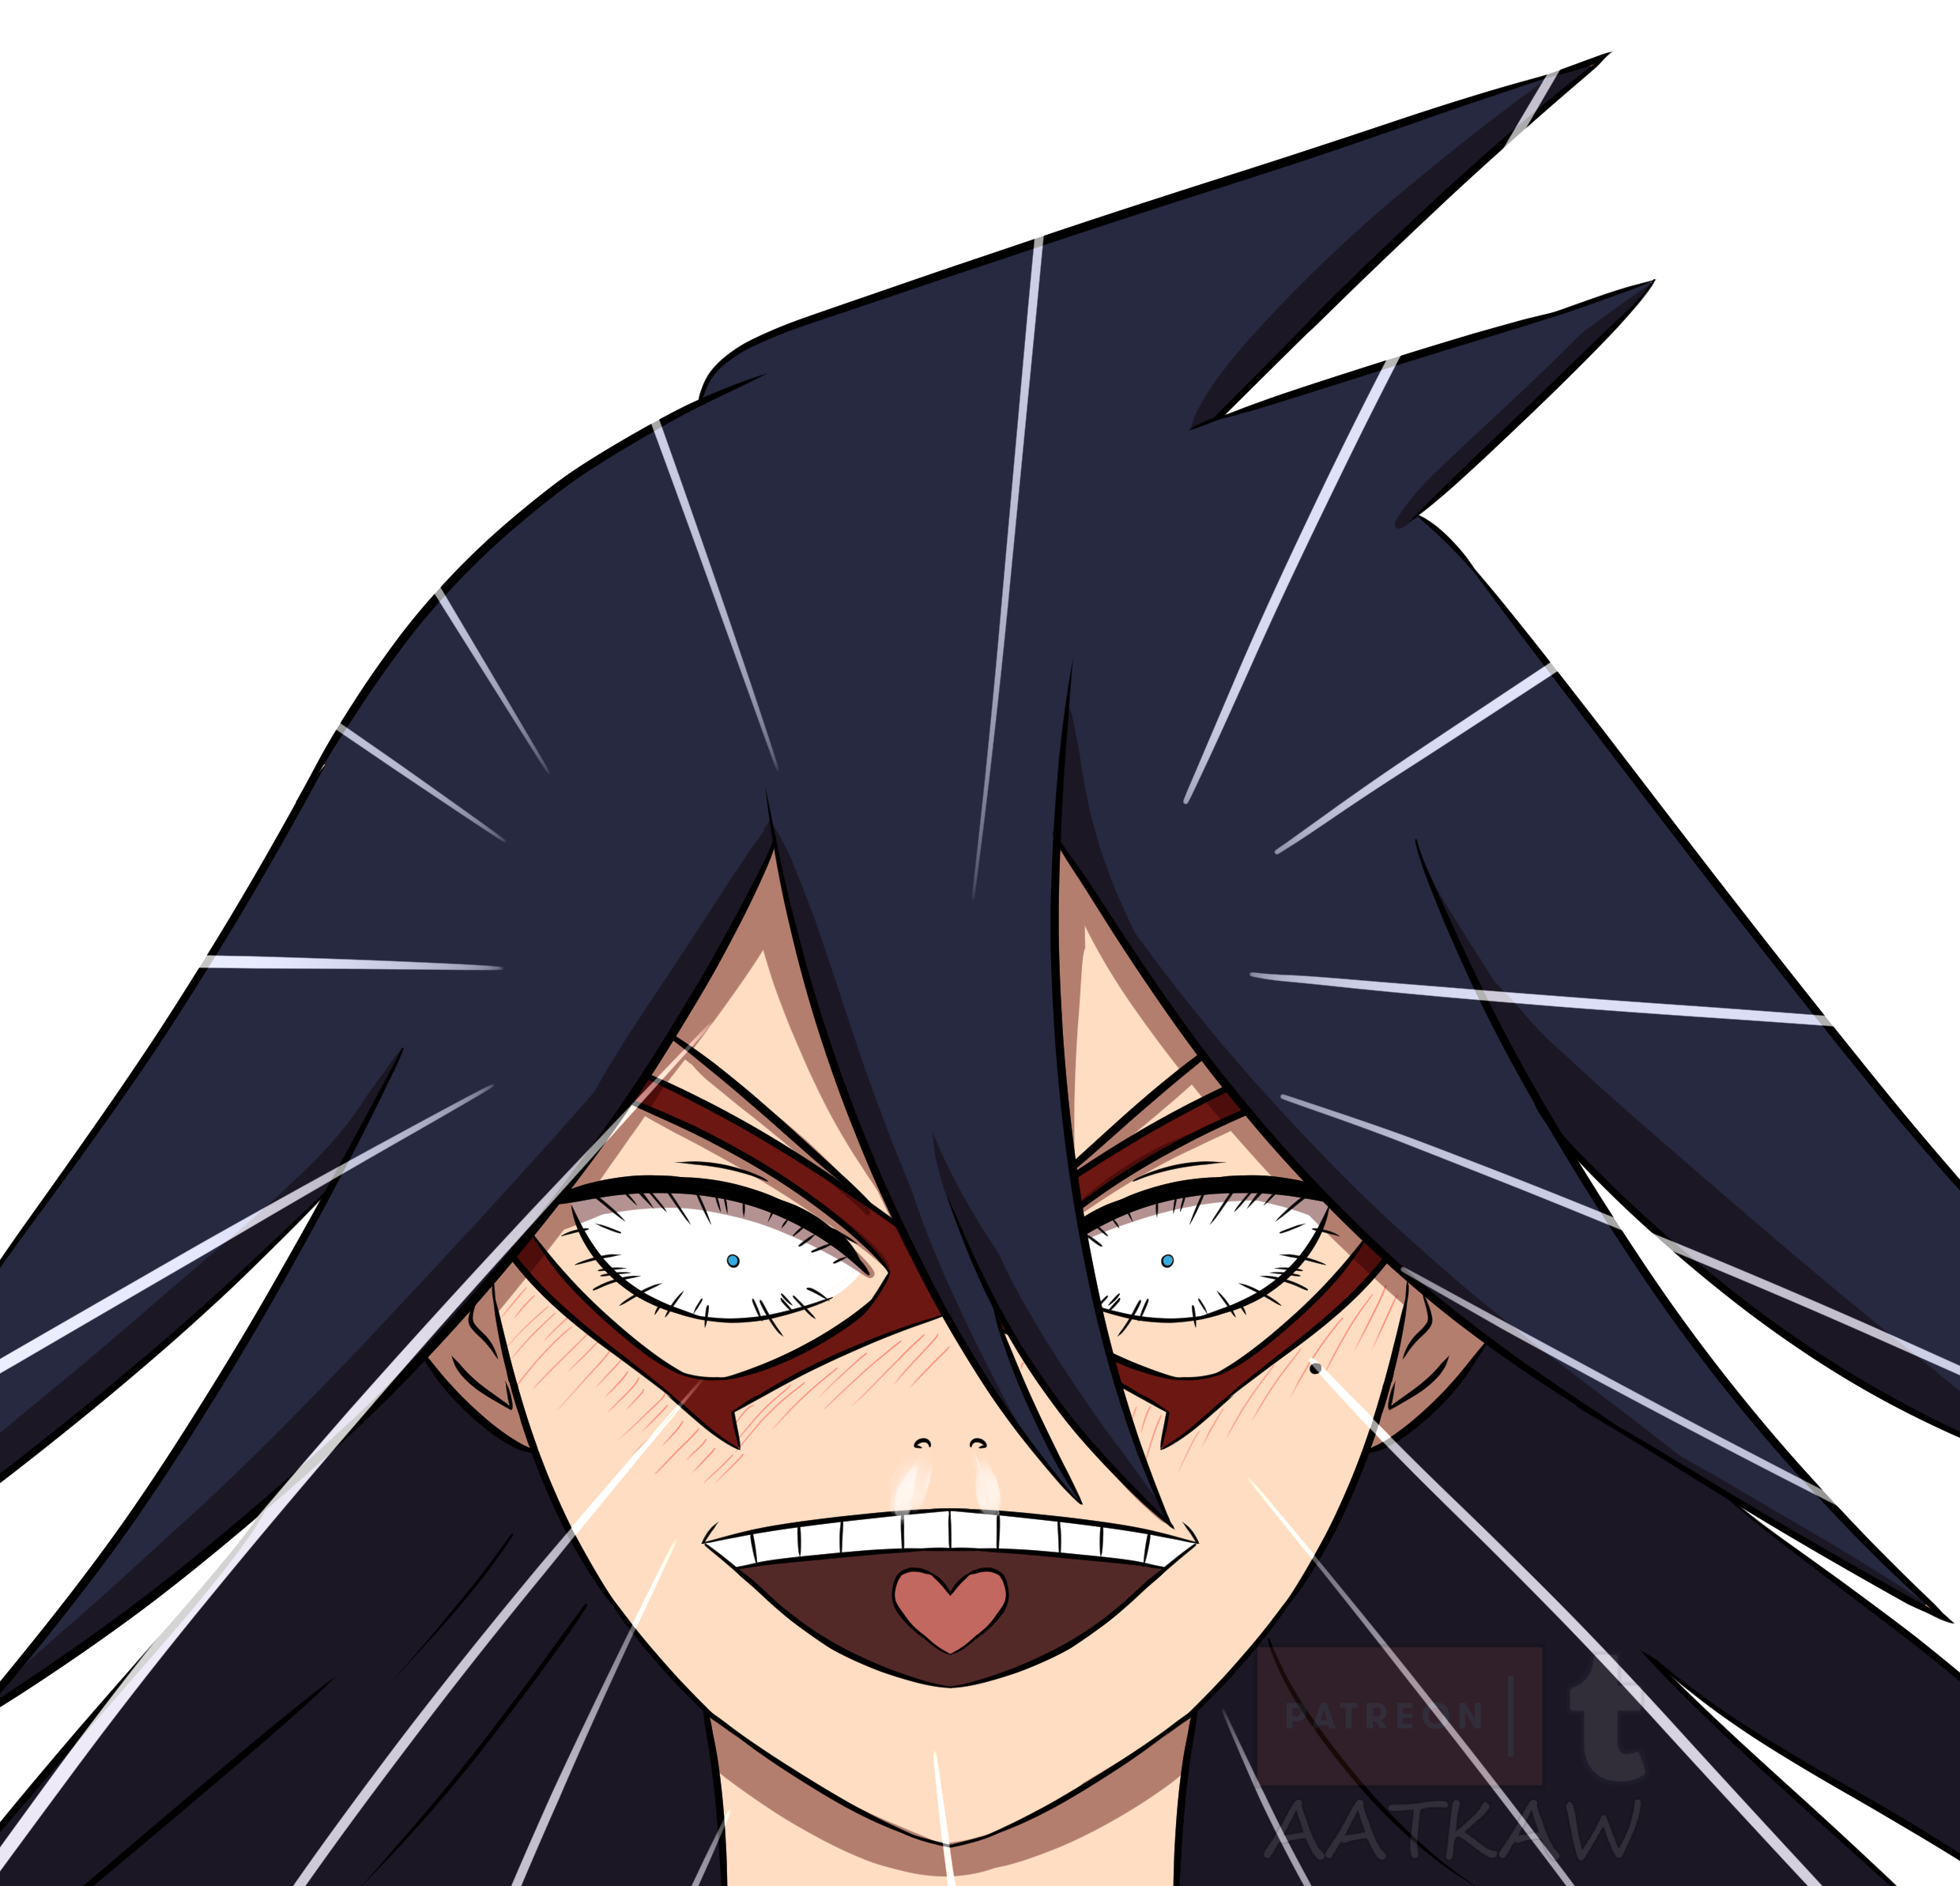 Bnha transparent midnight. There was this one